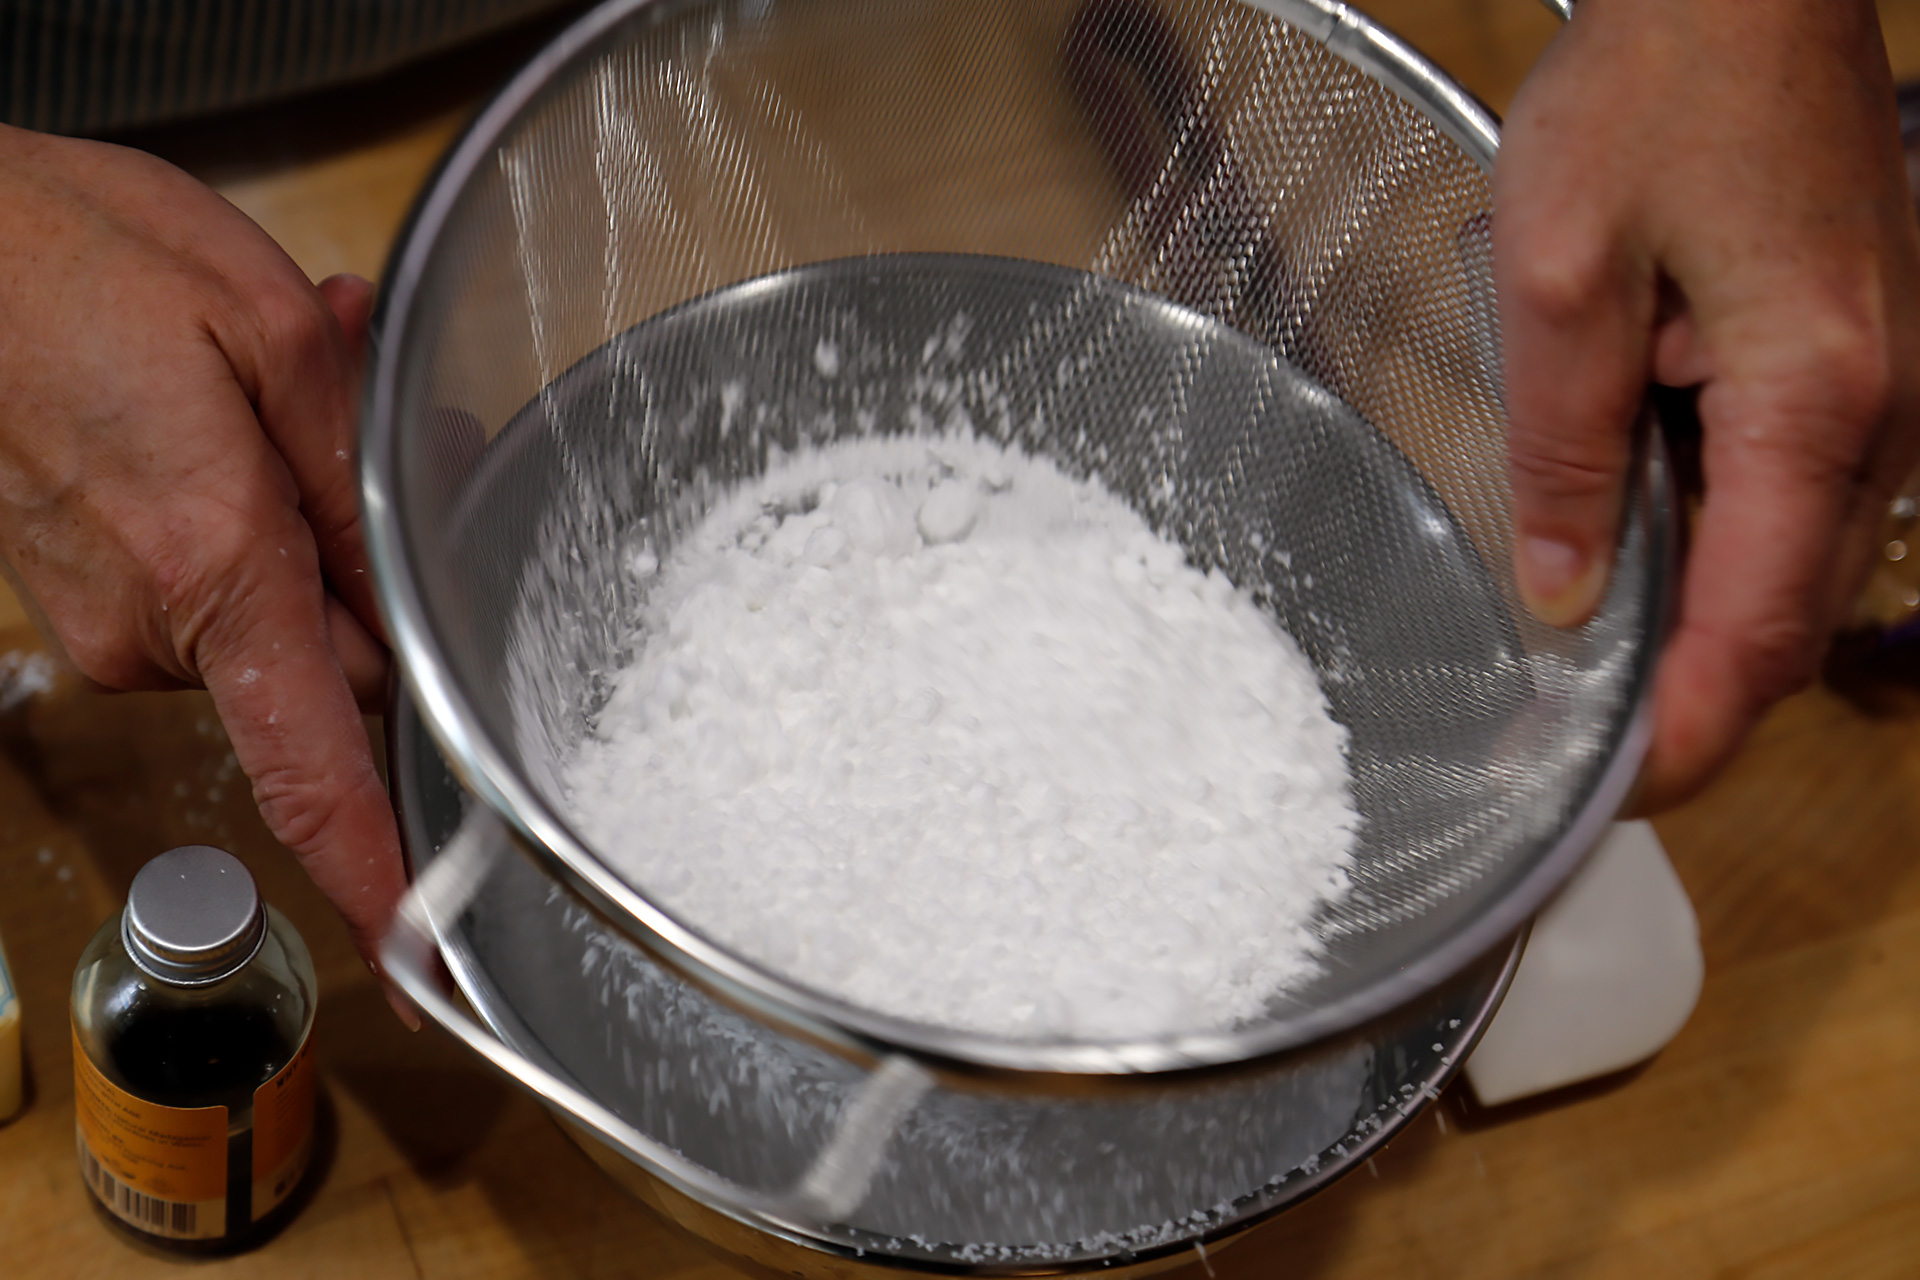 Sift 1 cup powdered sugar.